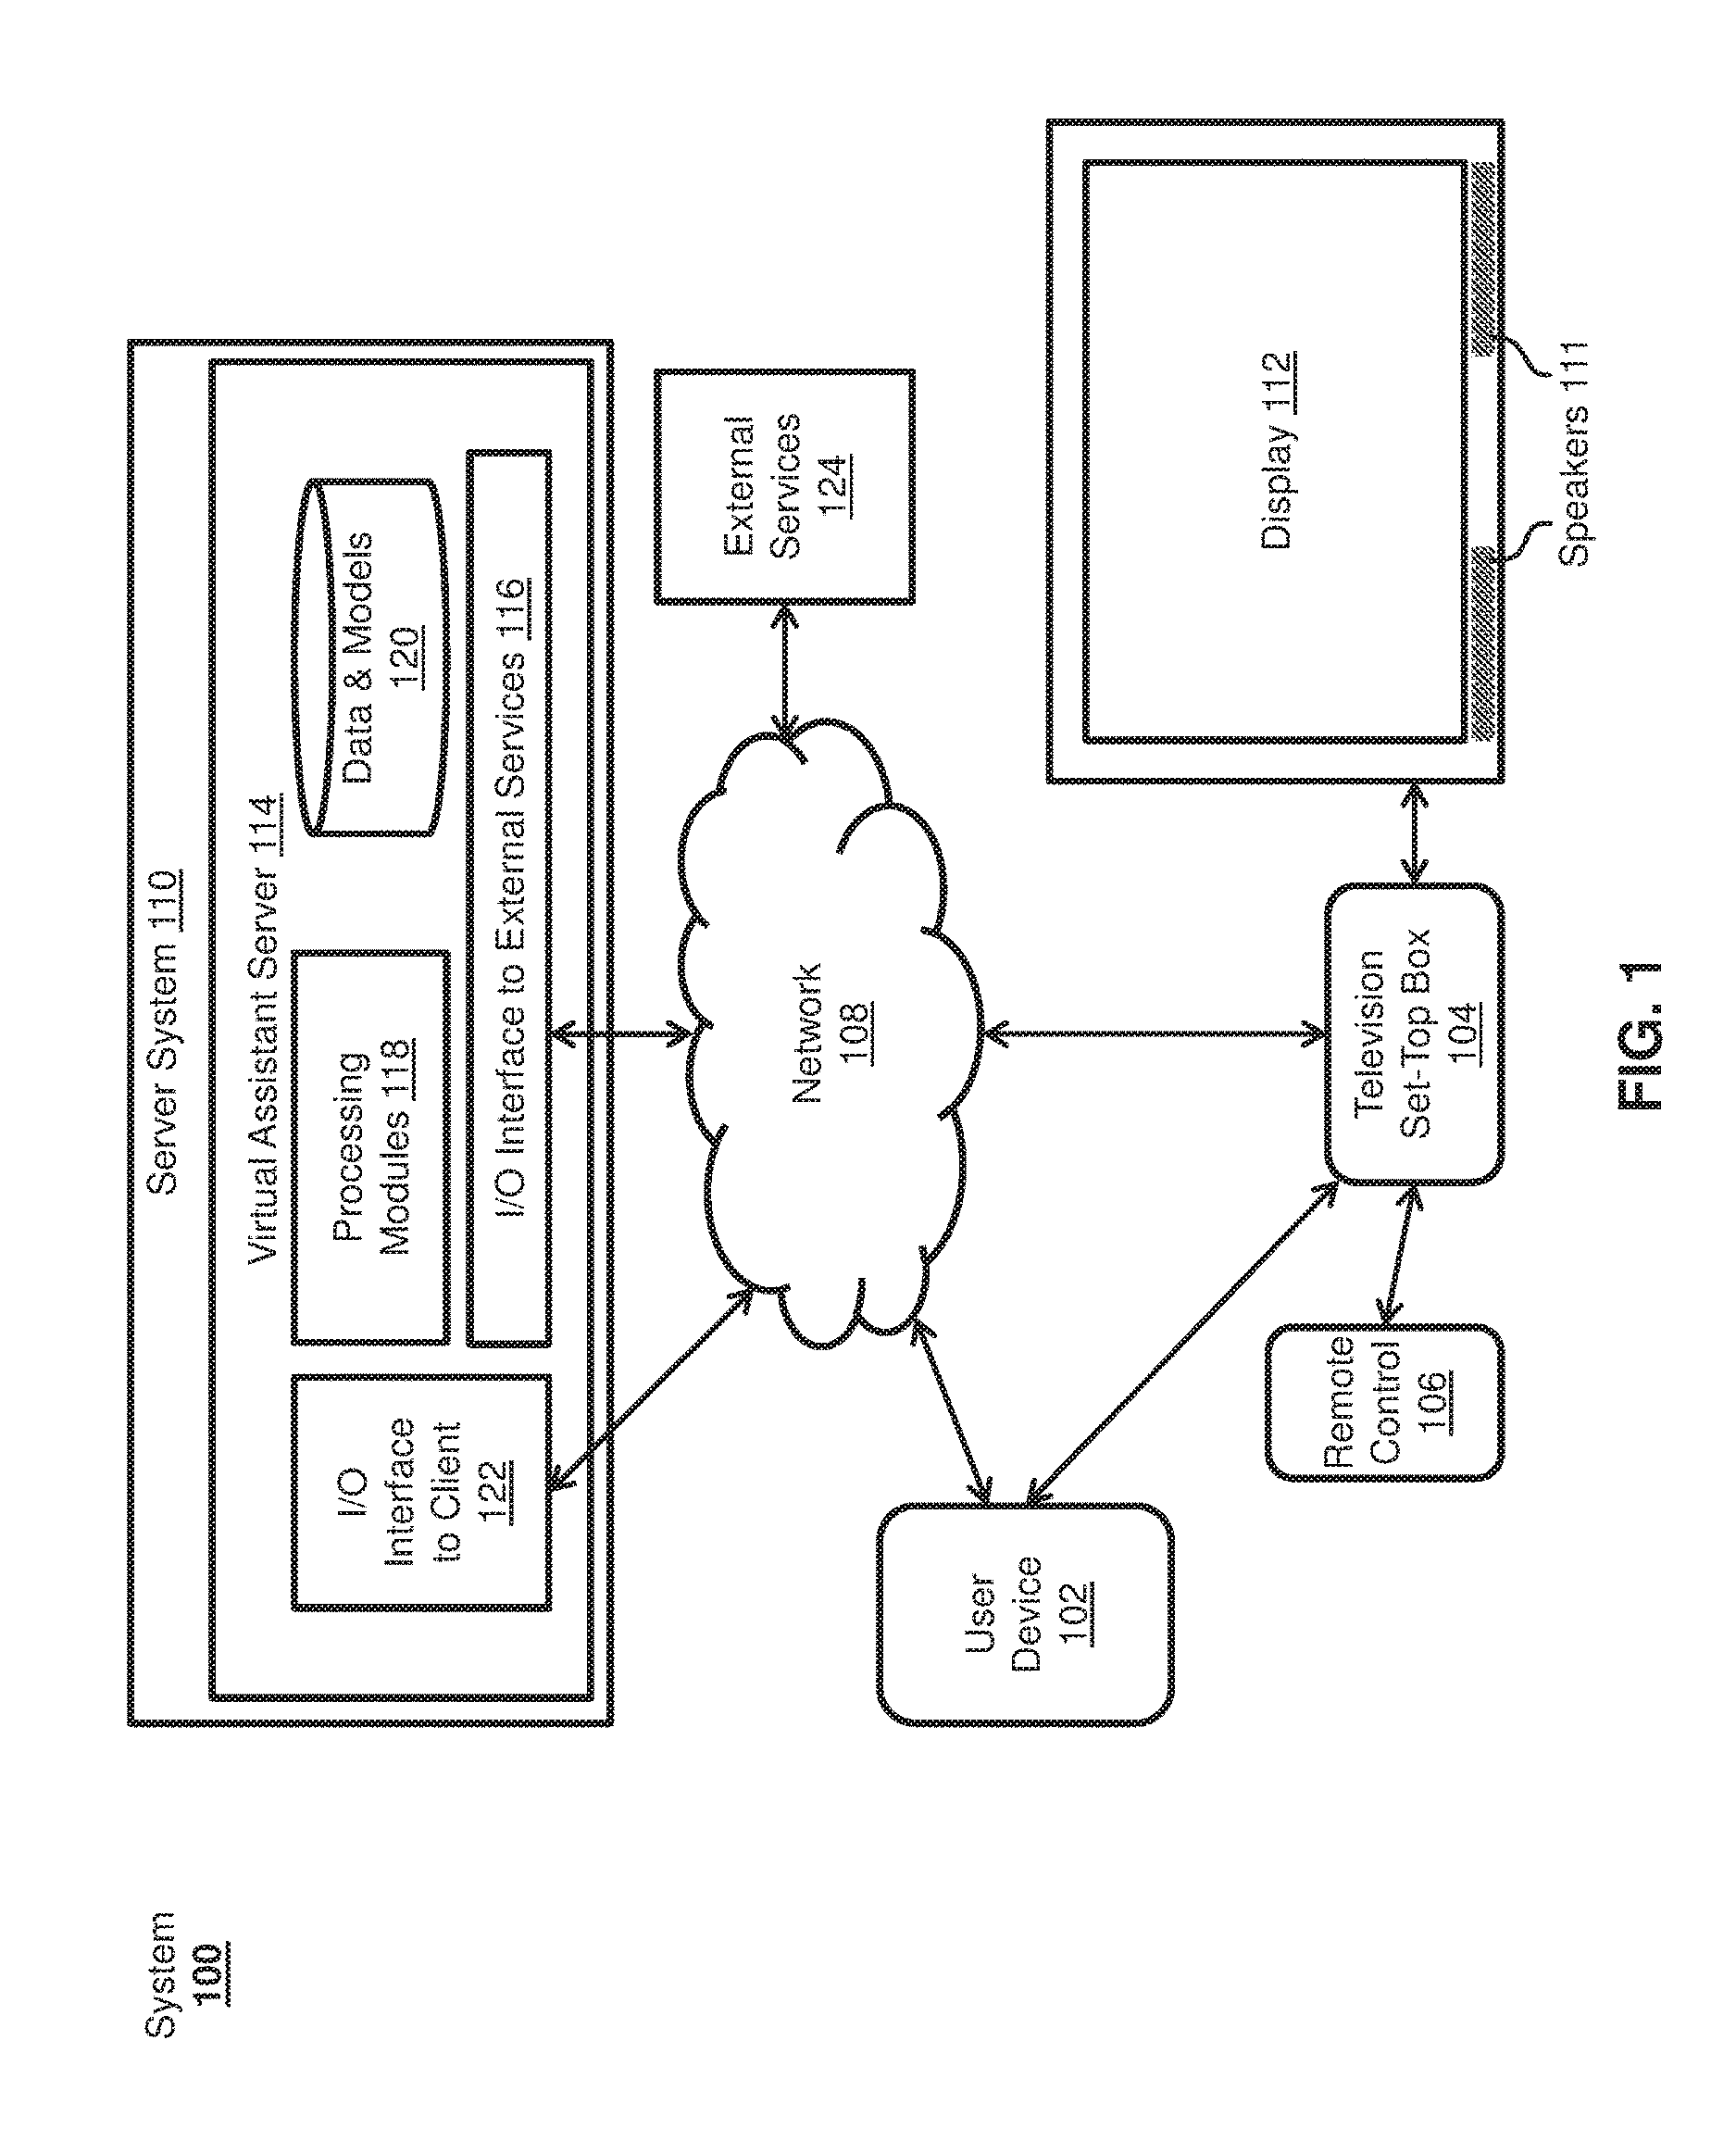 US9668024B2 - Intelligent automated assistant for TV user interactions -  Google Patents